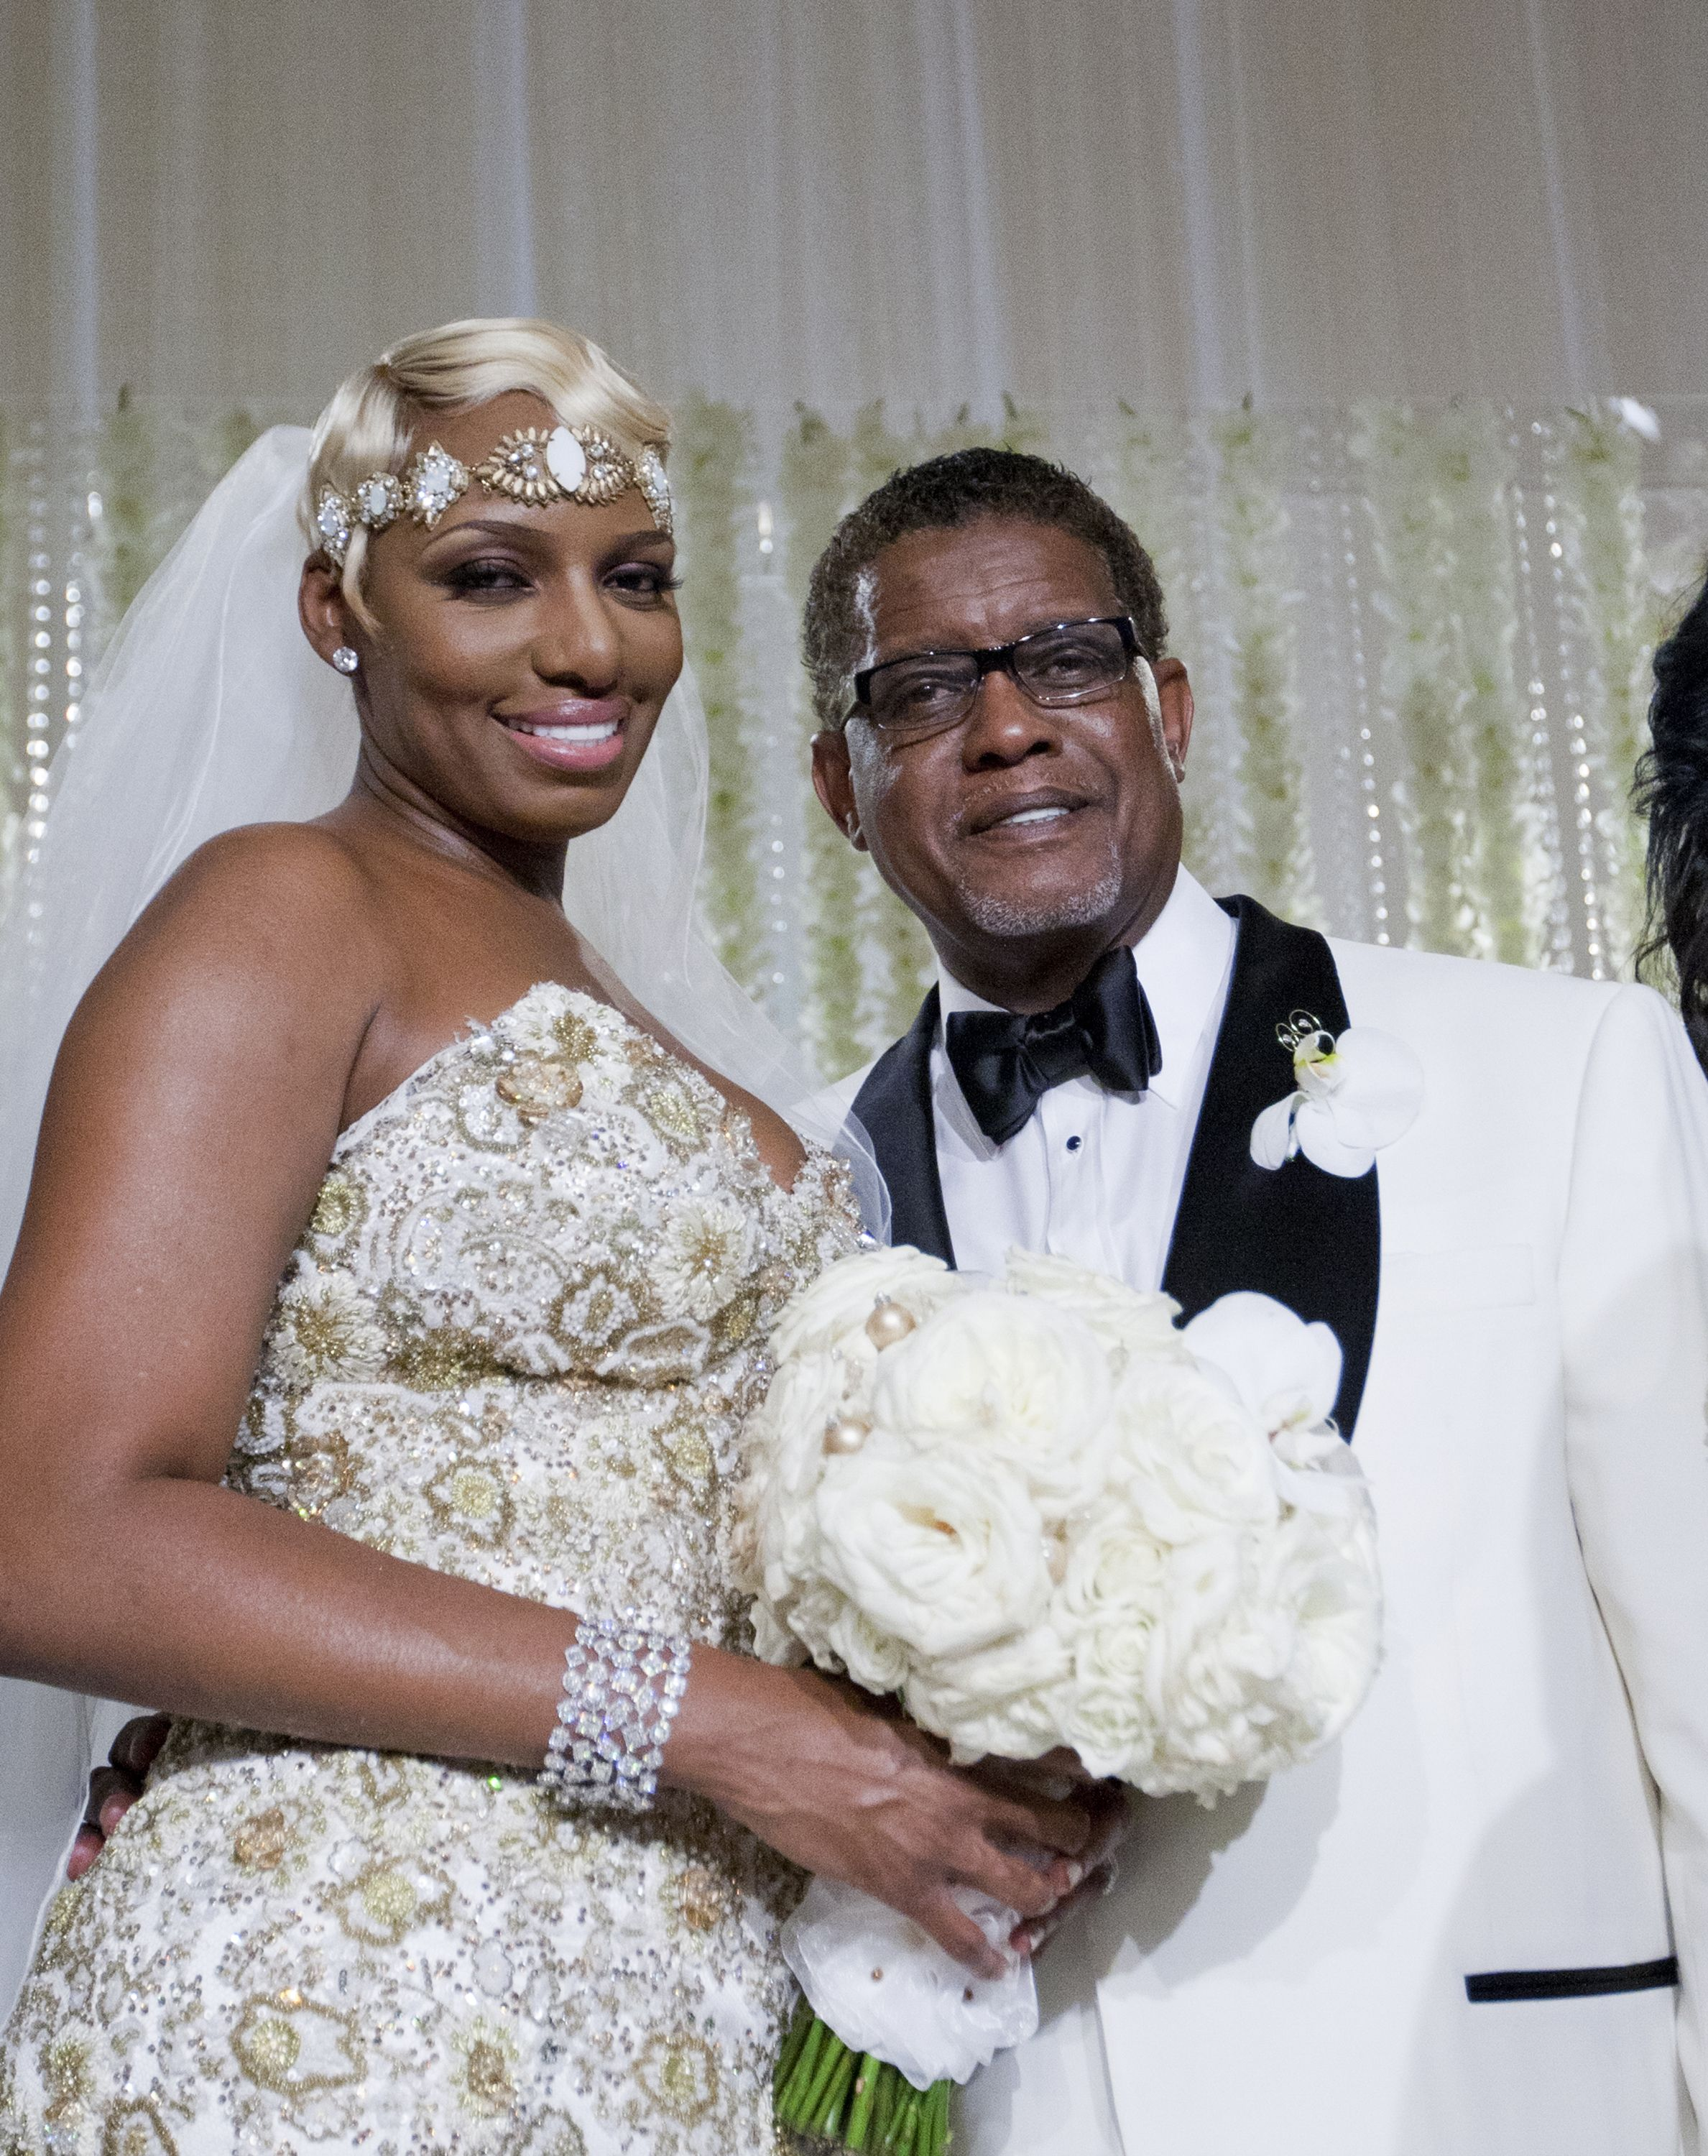 After a long battle with cancer, gregg leakes has passed away peacefully in his … Rhoa Nene And Gregg Leakes S Relationship Timeline And History